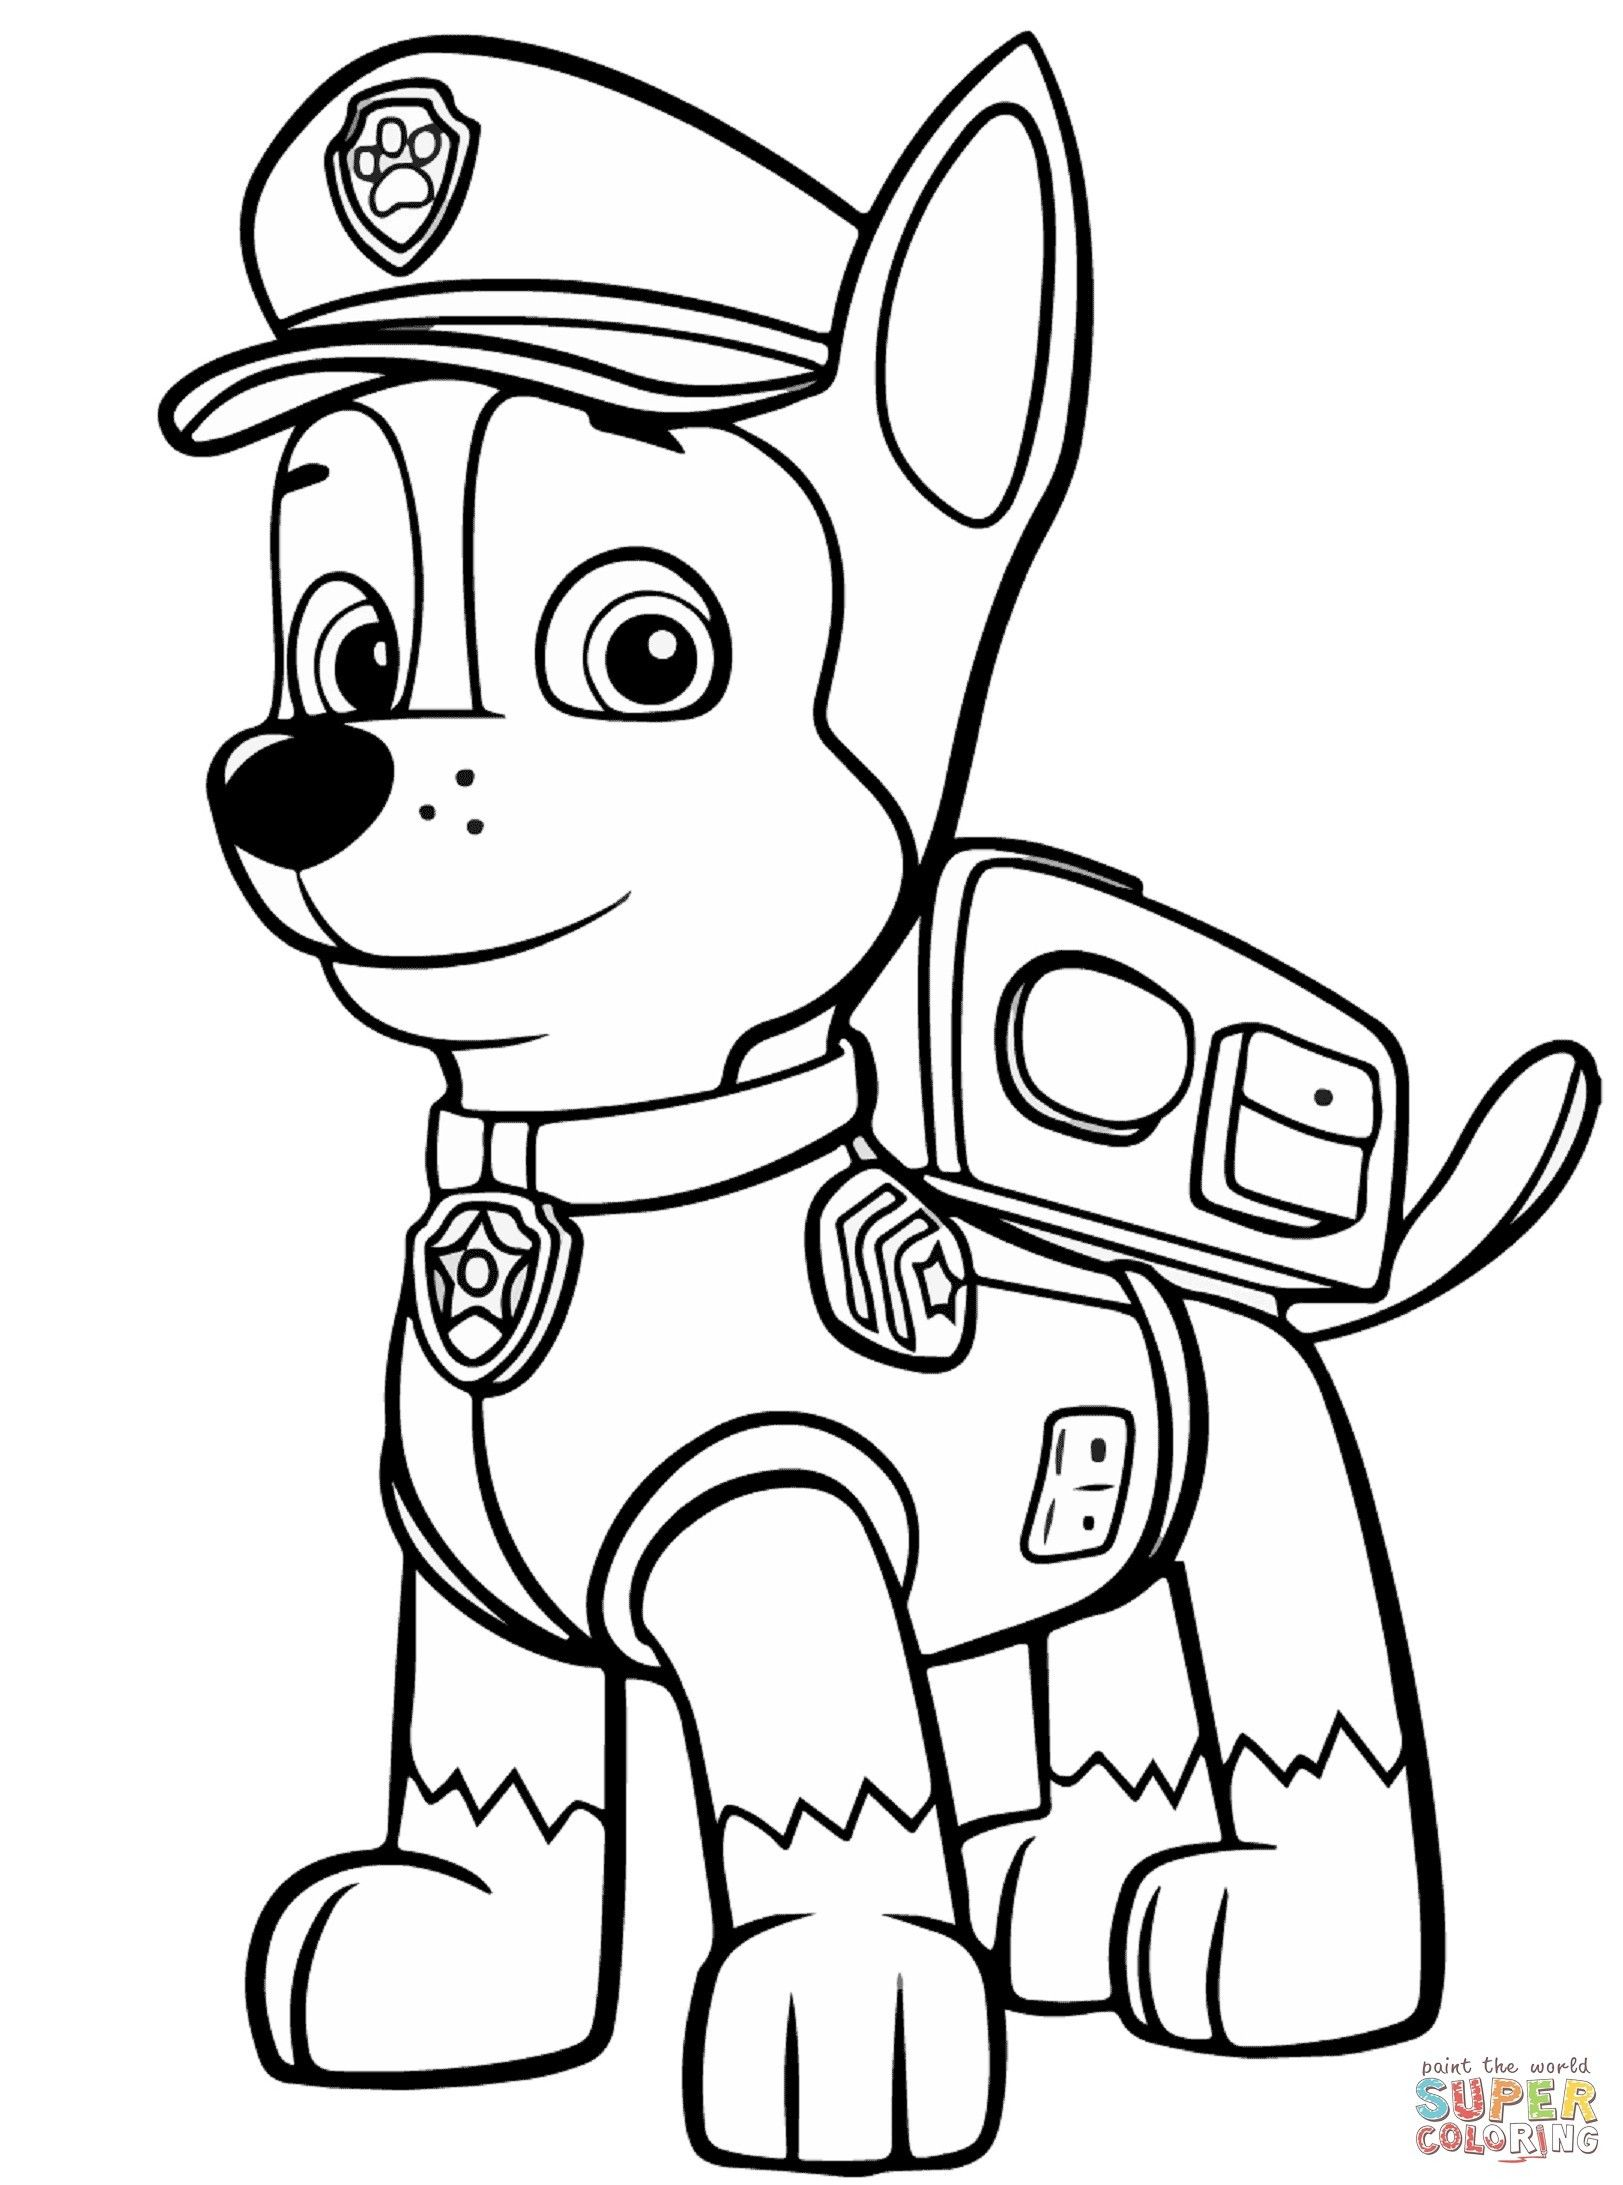 Pin By Ilze Wessels On My Saves In 2021 Paw Patrol Coloring Paw Patrol Coloring Pages Chase Paw Patrol